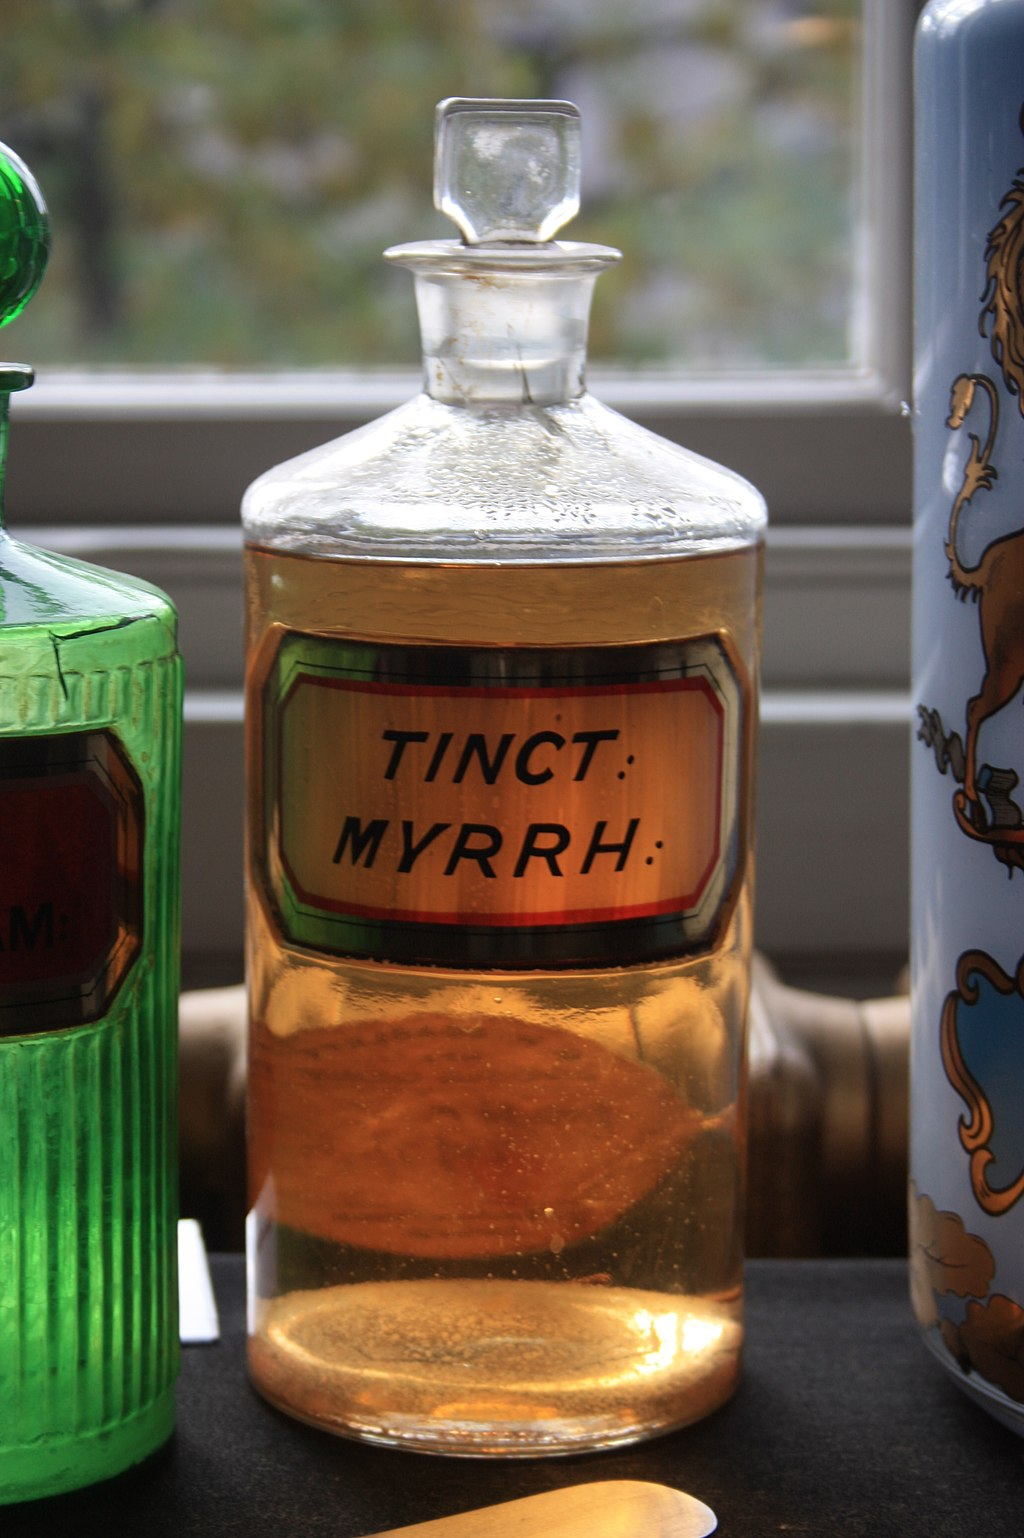 1024px-An_old_bottle_of_Tincture_of_Myrrh